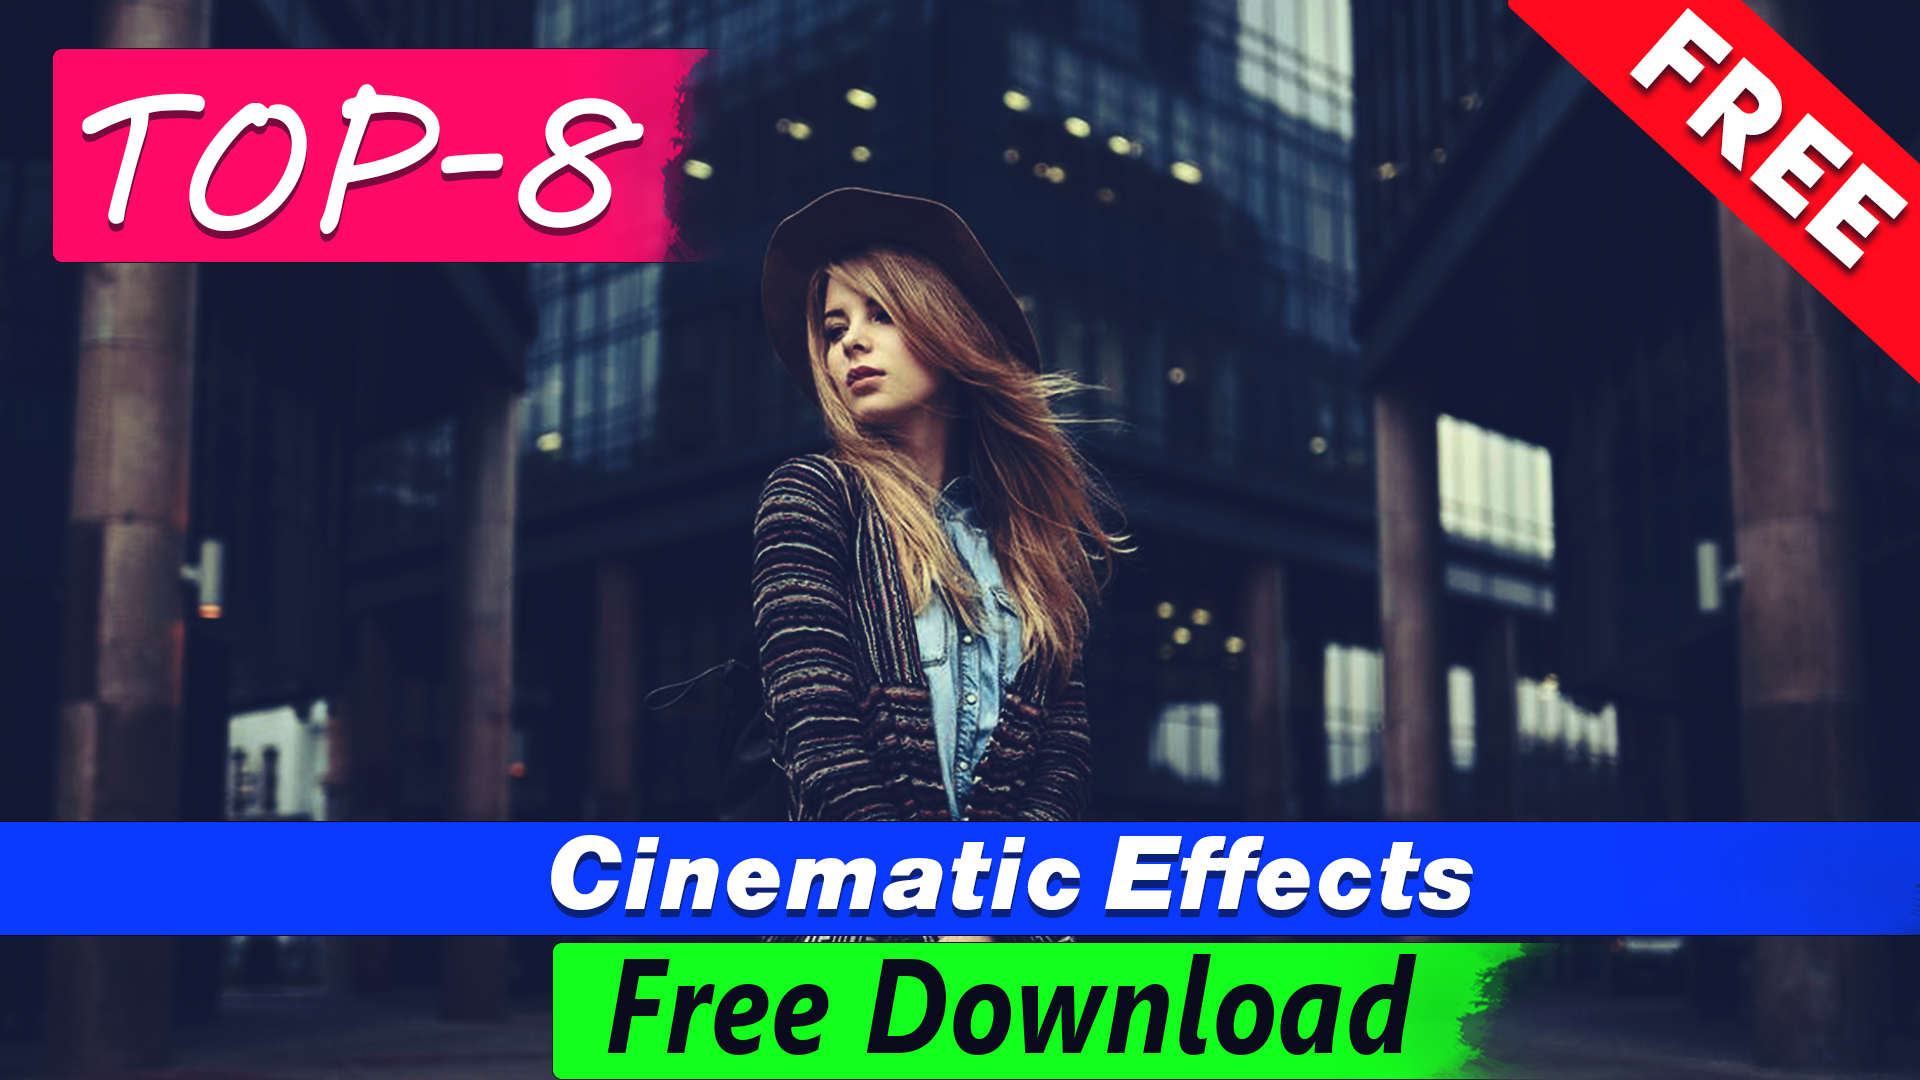 Cinematic Effects Photoshop actions